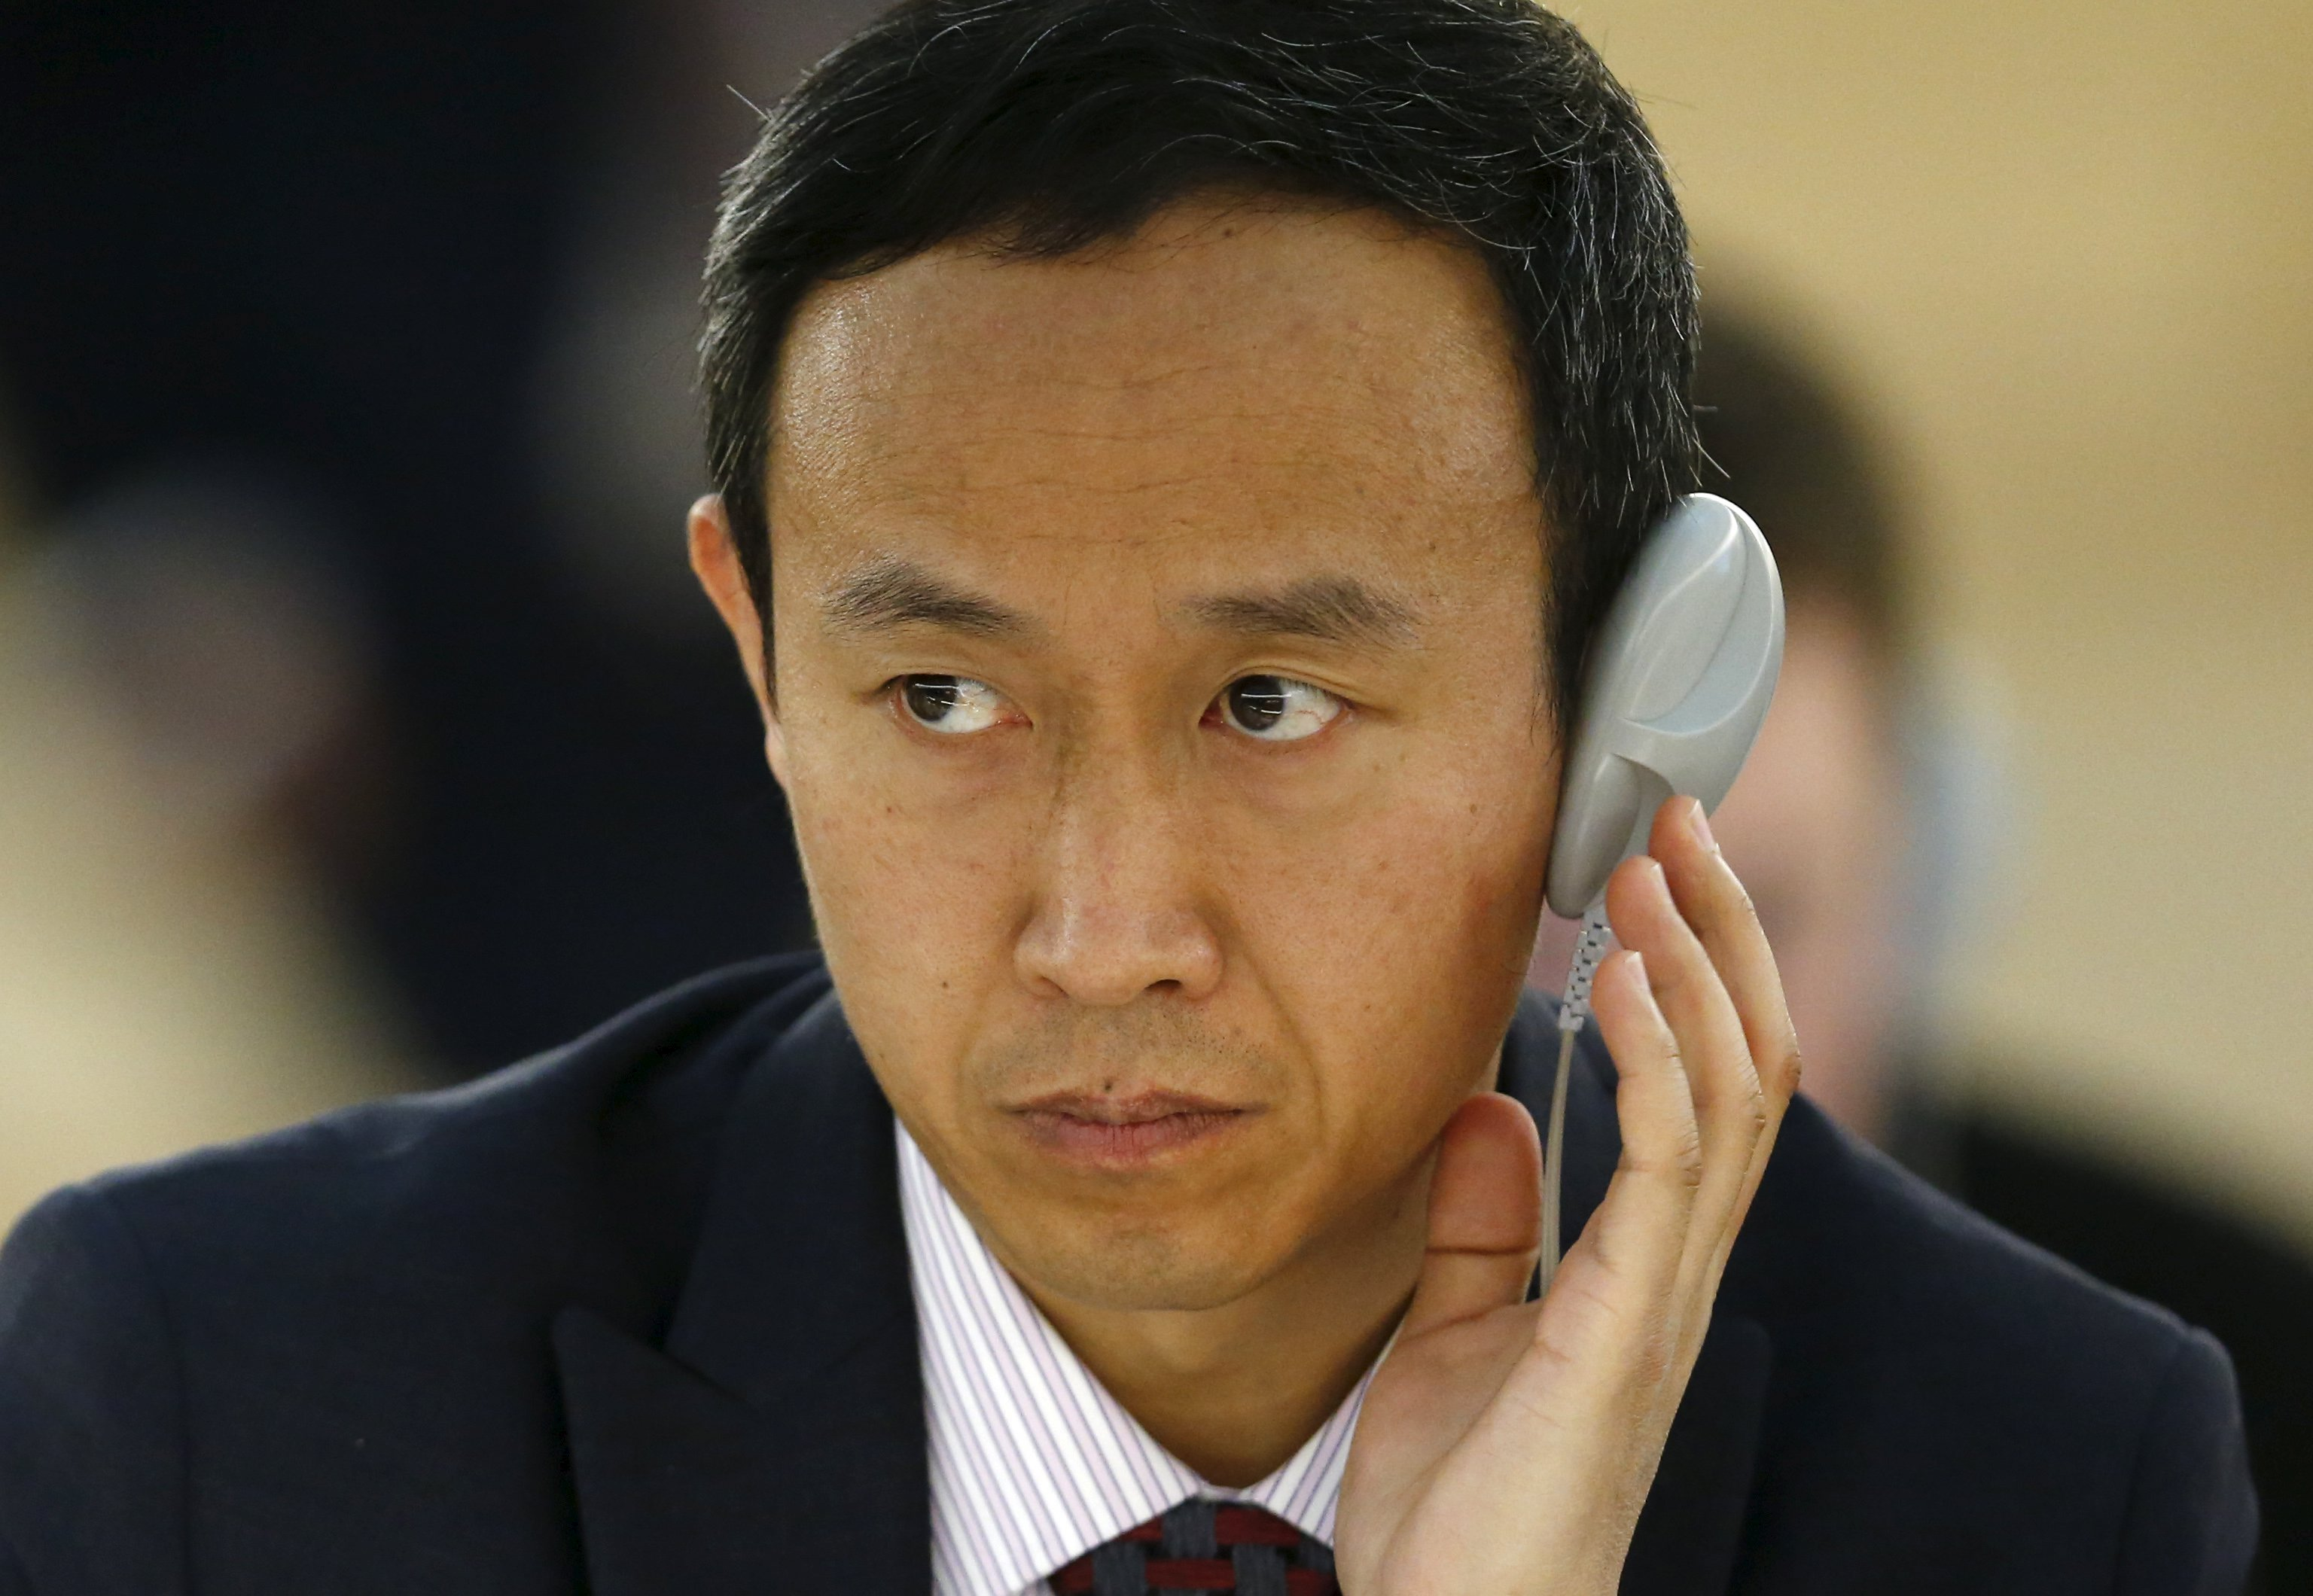 Chinese diplomat Zhang Yaojun, shown here in March, was accused of taking an unauthorized photo of Tibetan dissident Golog Jigme at the U.N. Human Rights Council building in Geneva. Zhang said he was taking a panoramic shot of the space. (Photo courtesy: REUTERS)